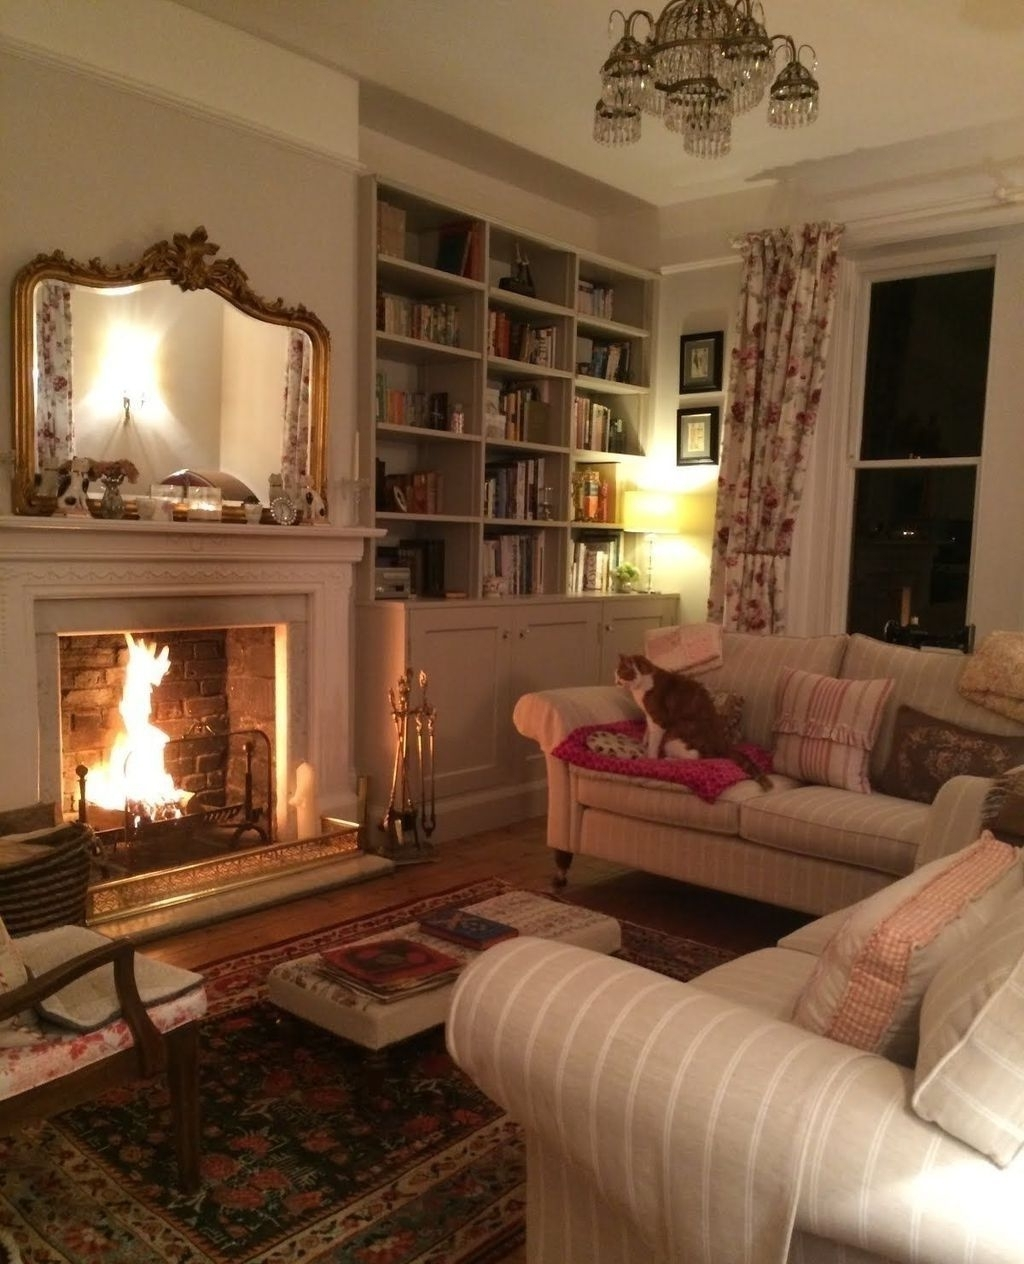 49 Cozy French Country Living Room Decor Ideas | Country Cosy Country Living Room